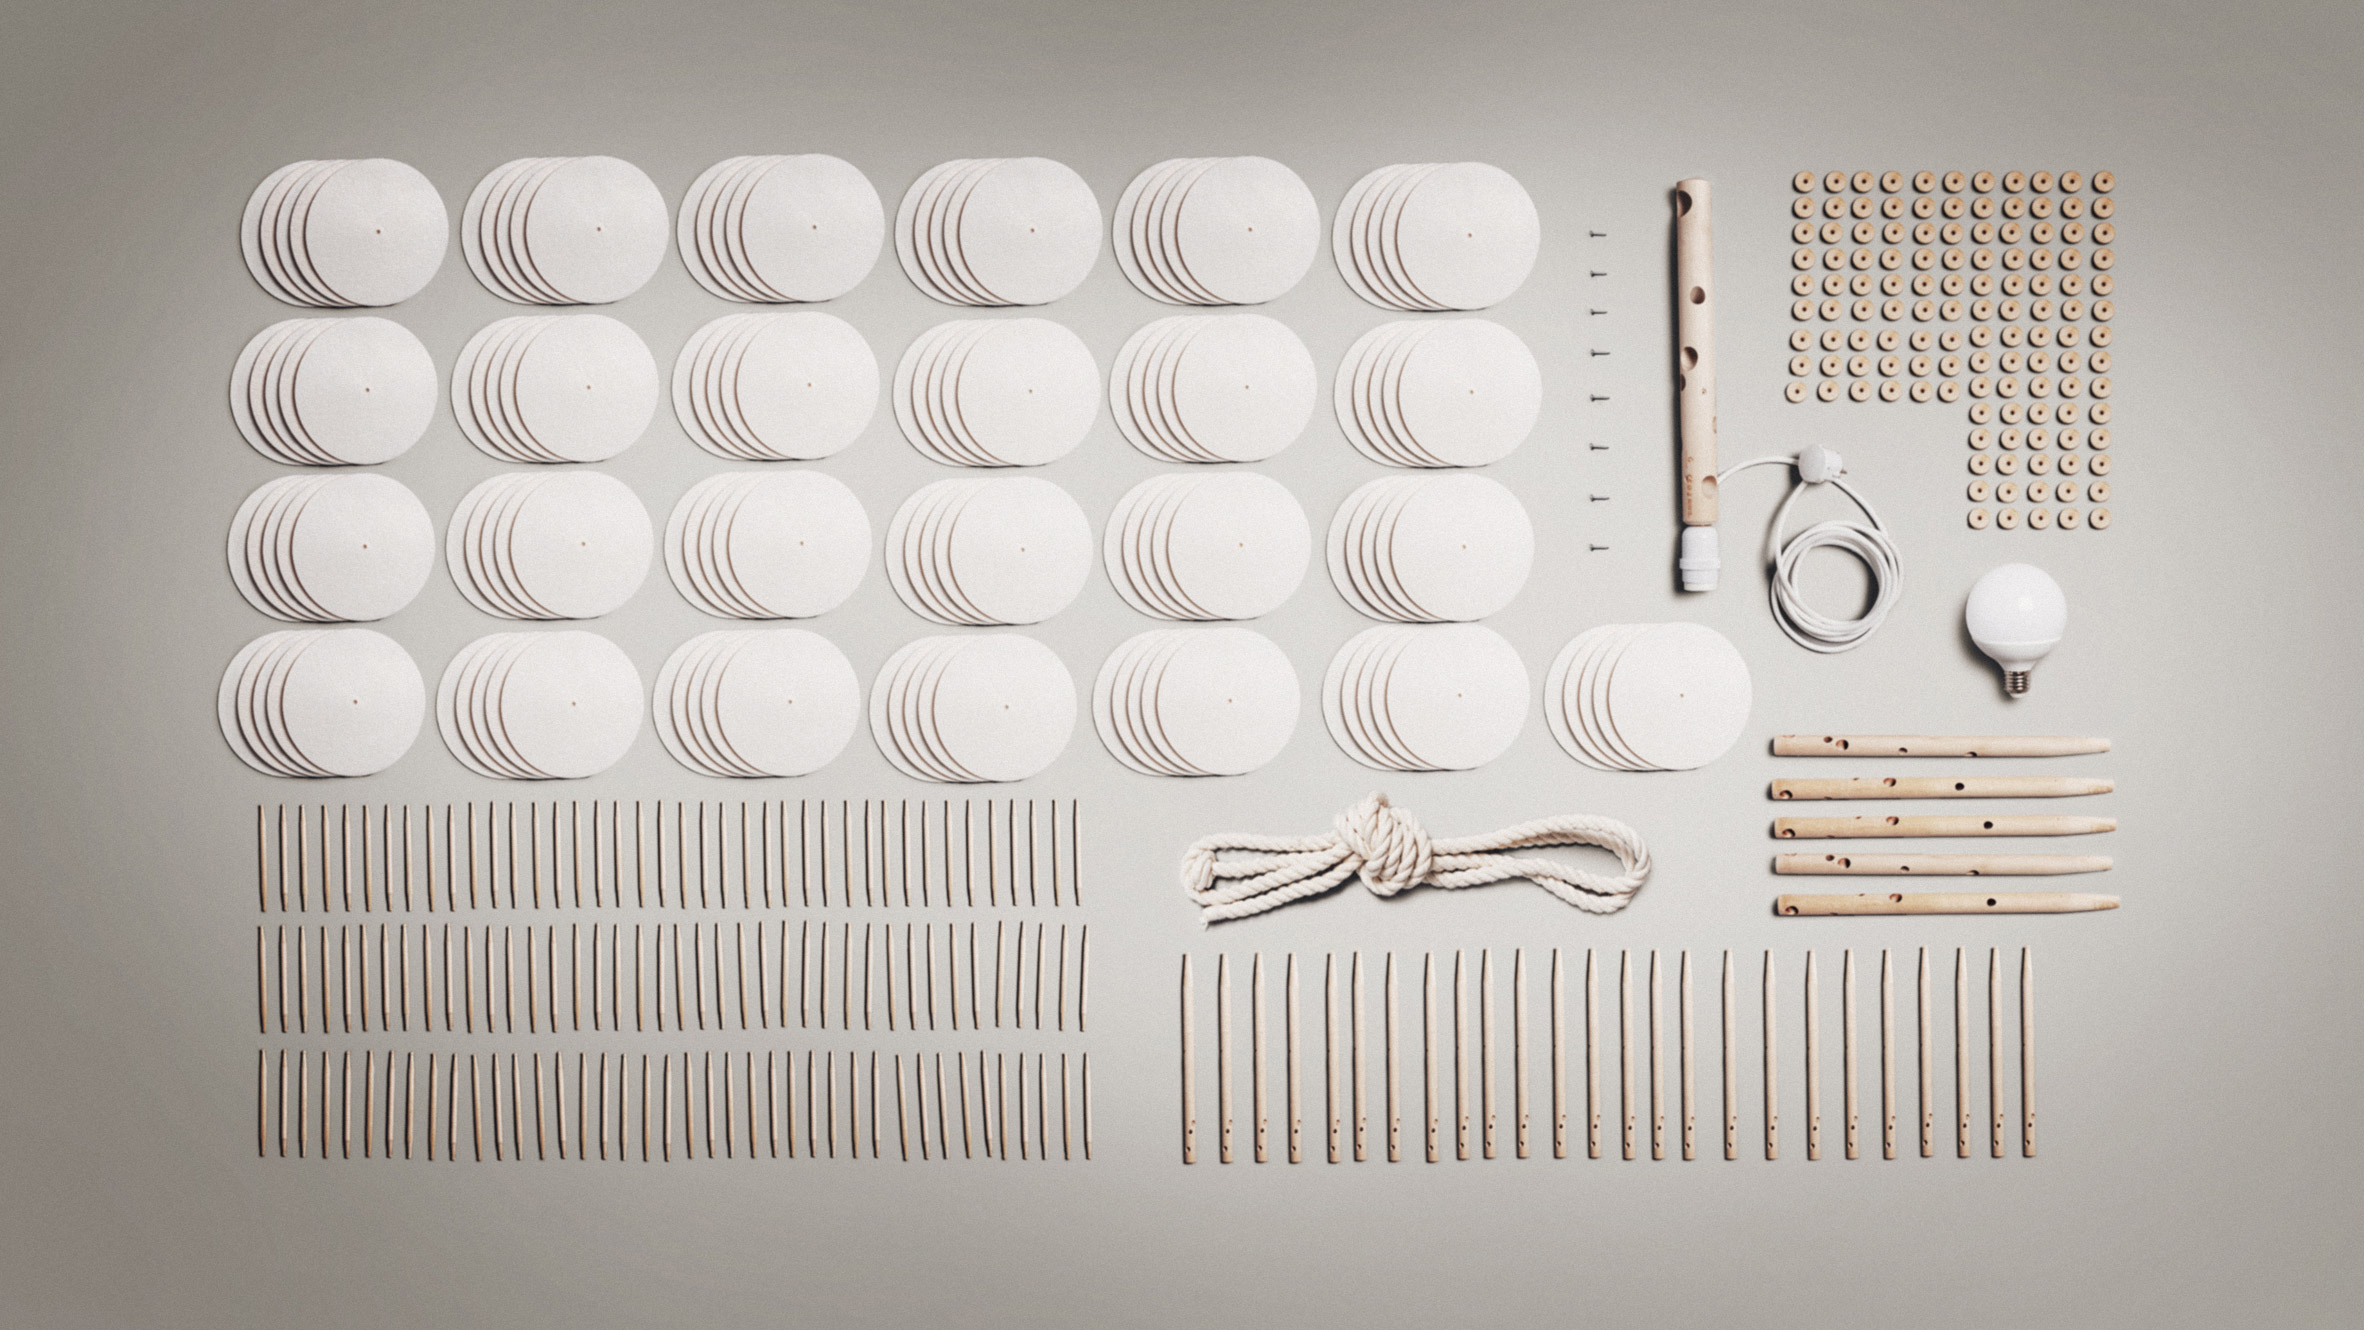 Leaf lamp assembly kit by Green Furniture Concept